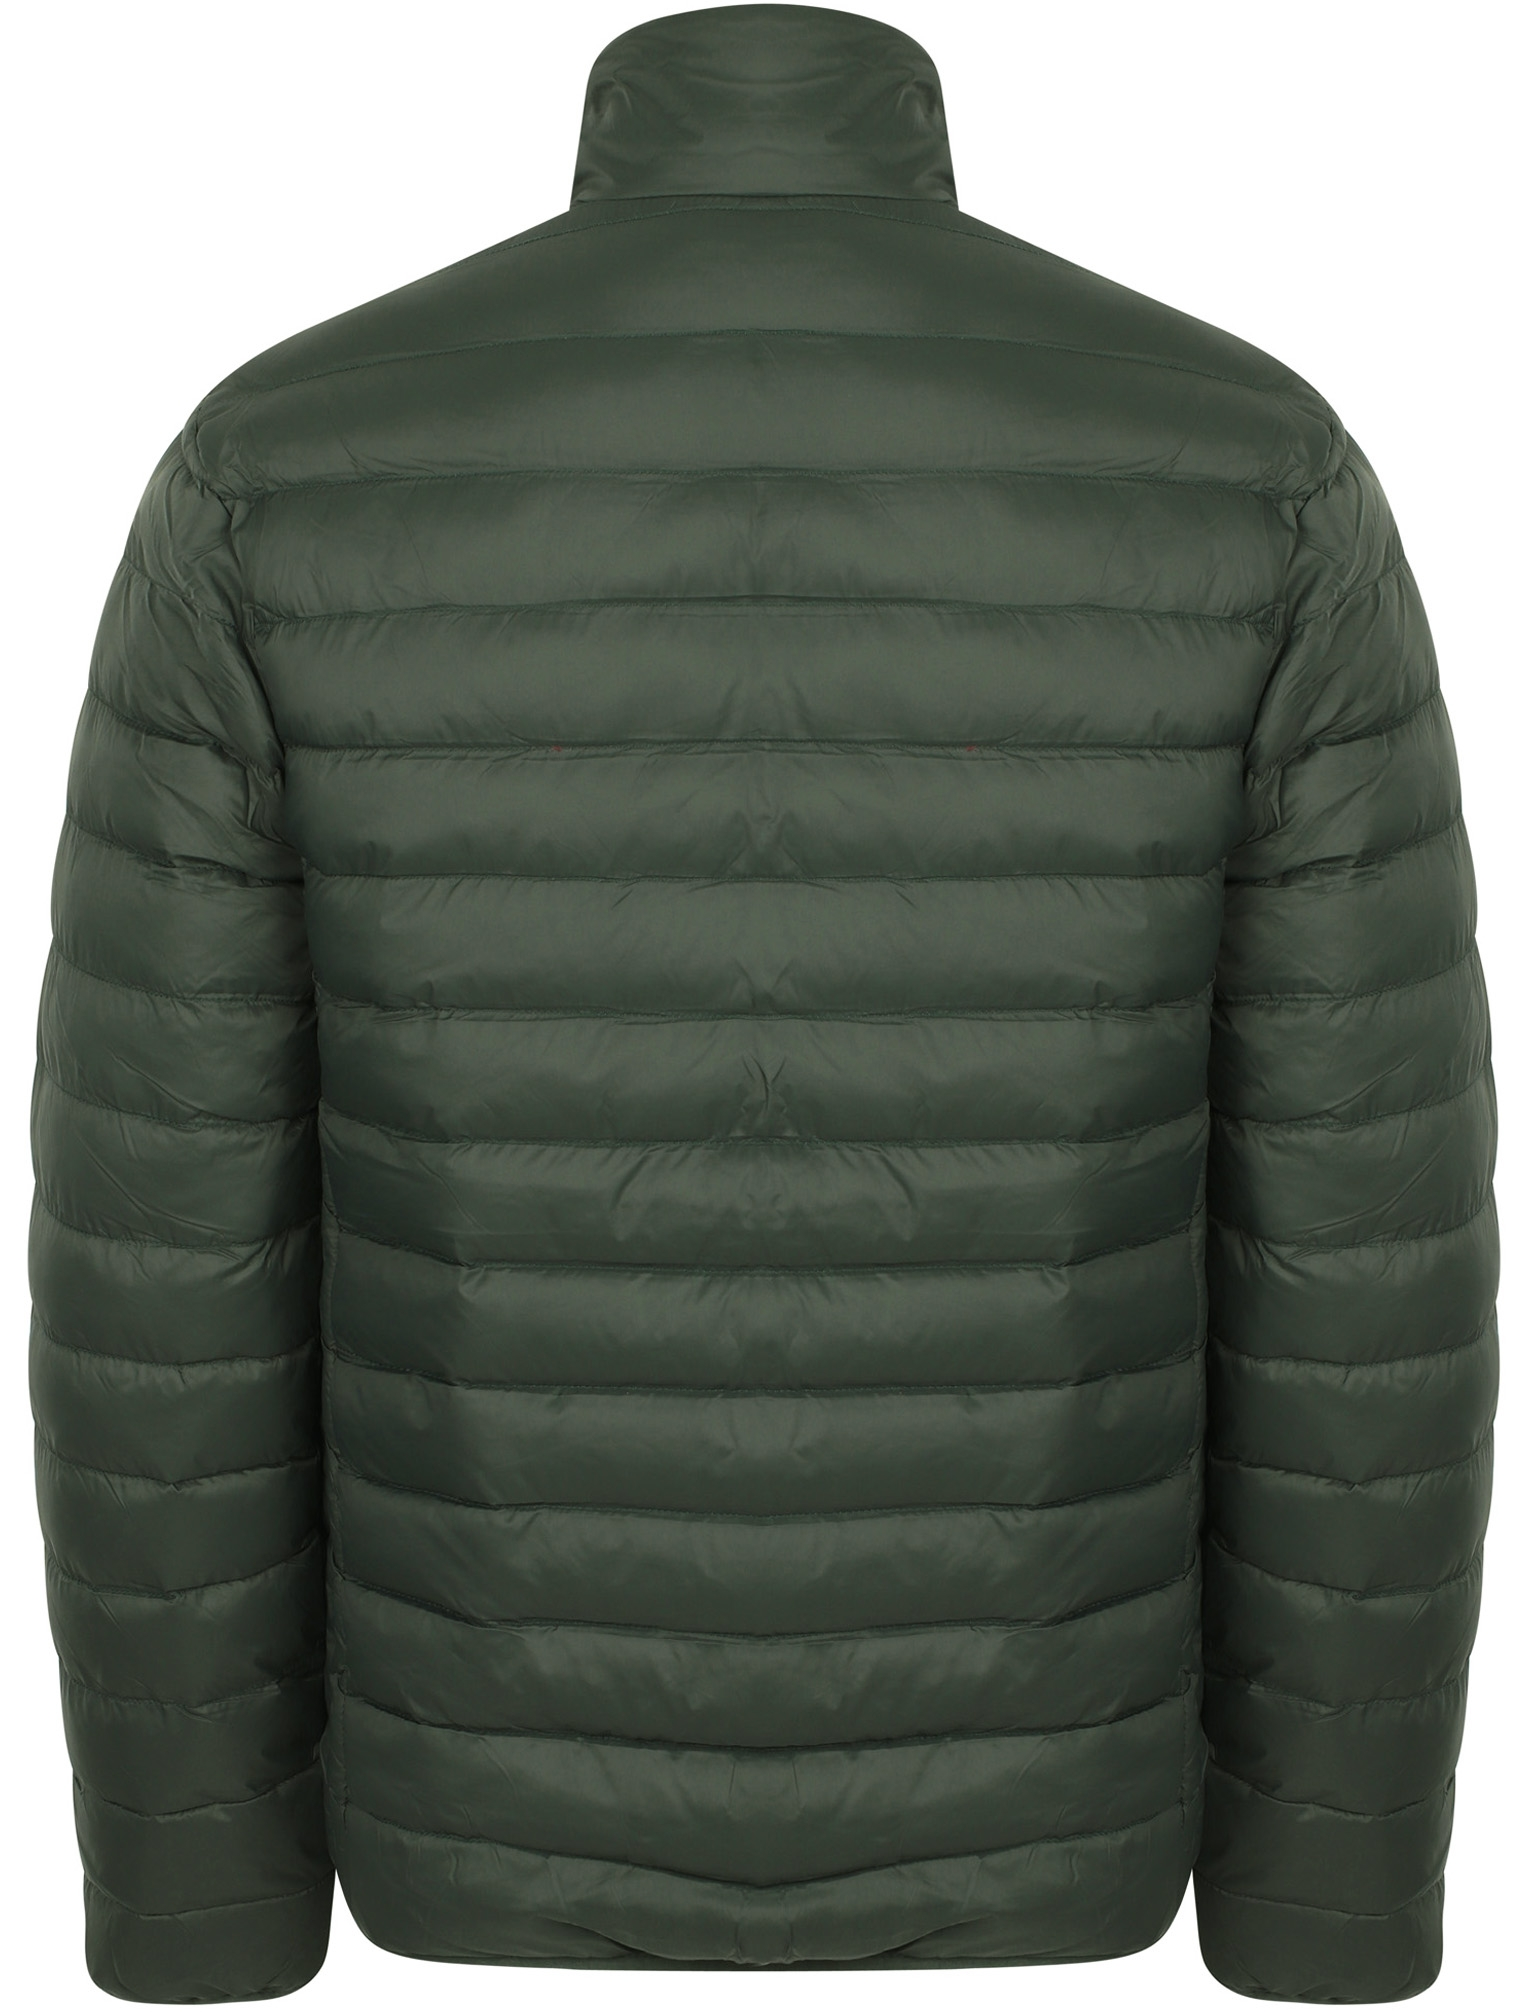 Tokyo-Laundry-Men-039-s-Bakman-Plain-Quilted-Padded-Puffer-Bubble-Jacket thumbnail 17